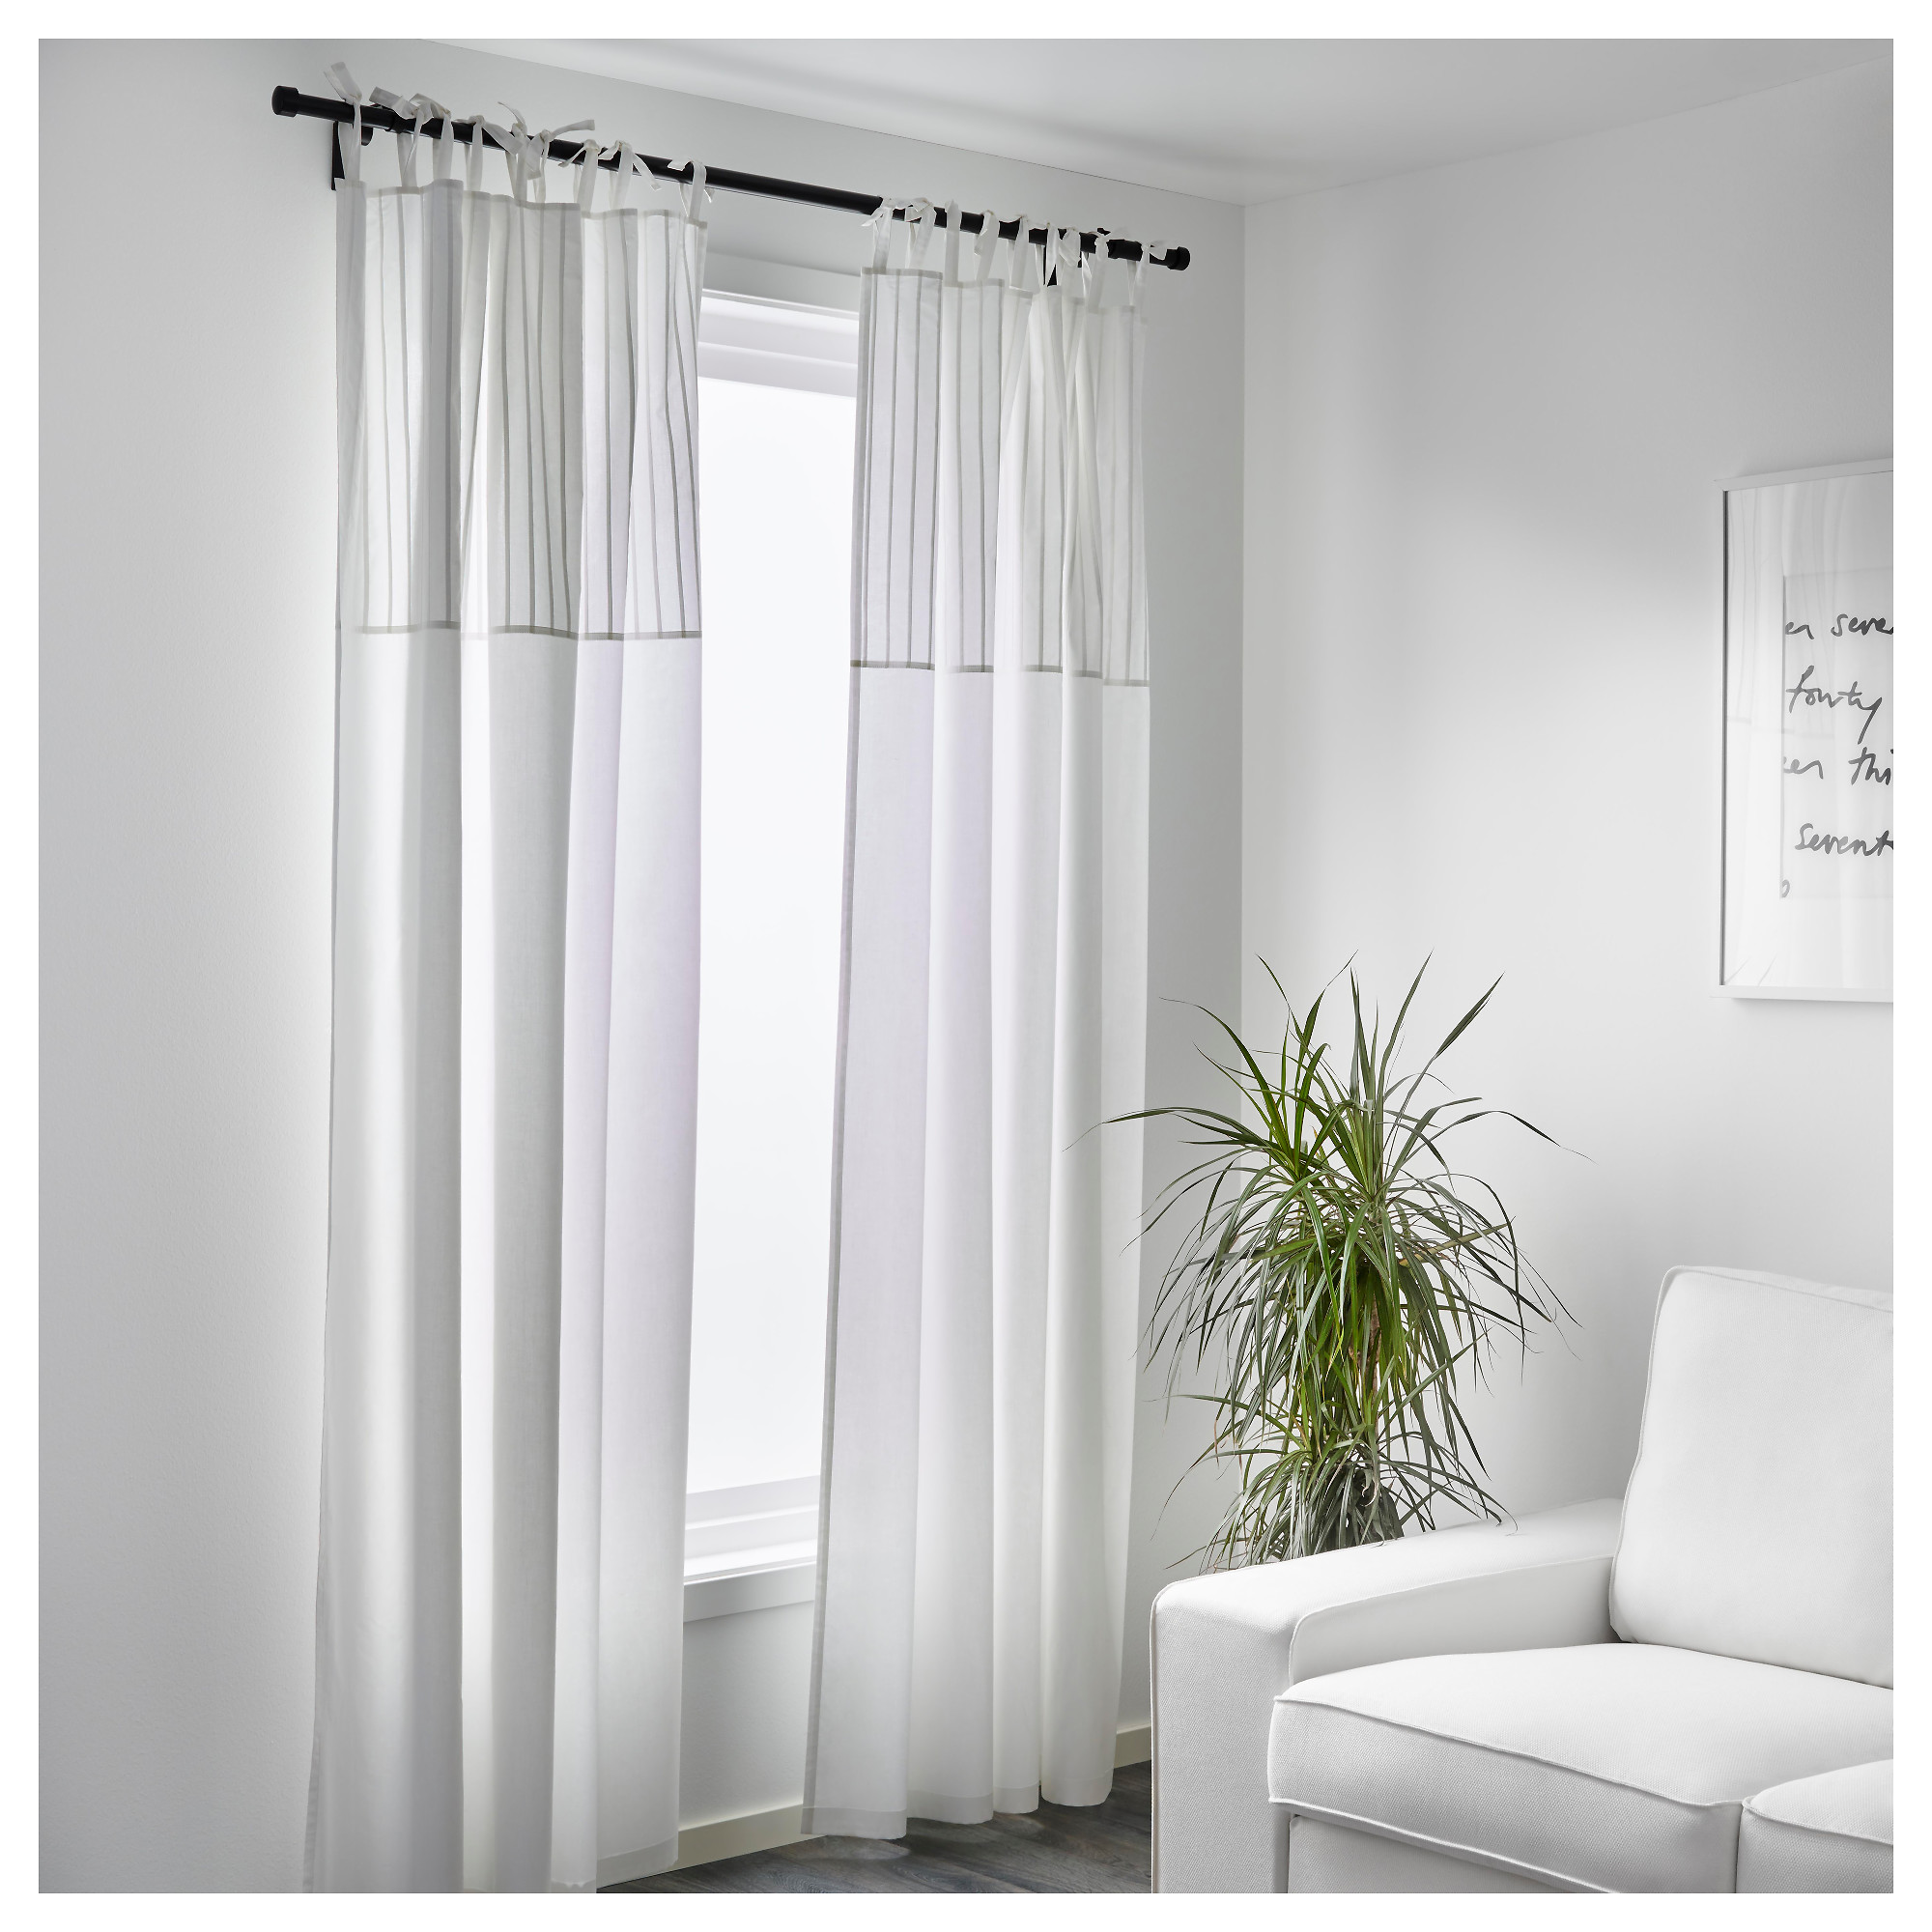 PÄRLBLAD Curtains, 1 pair - IKEA